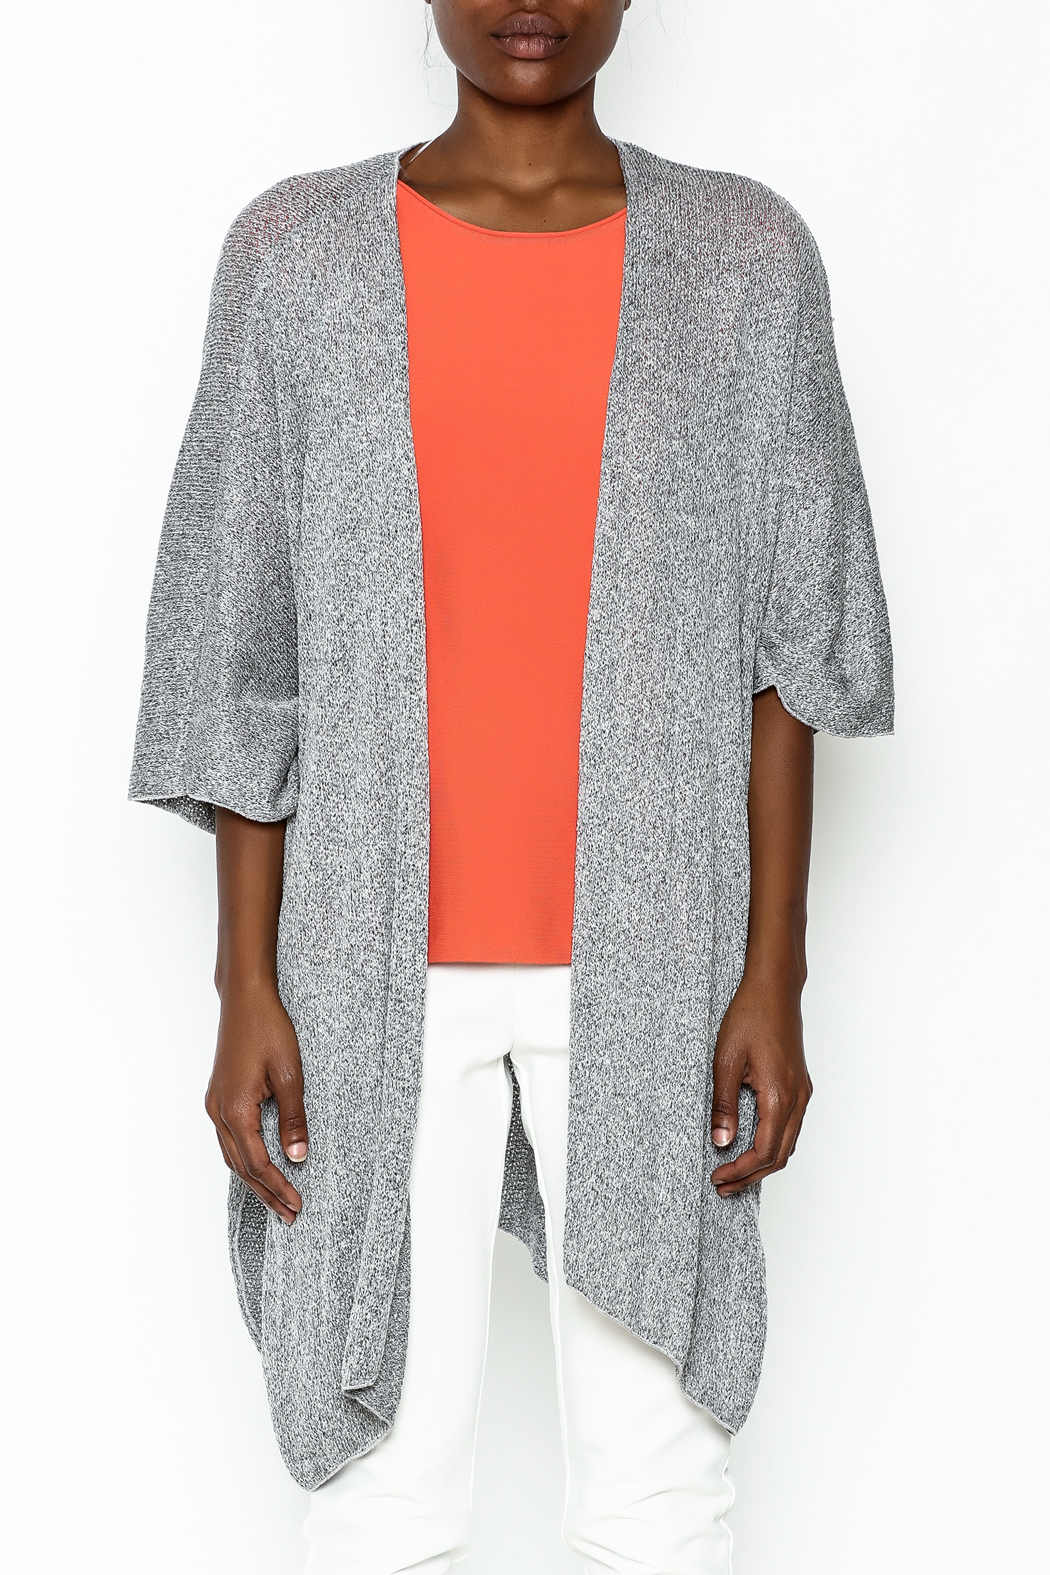 Audrey Grey Knit Cardigan - Front Full Image